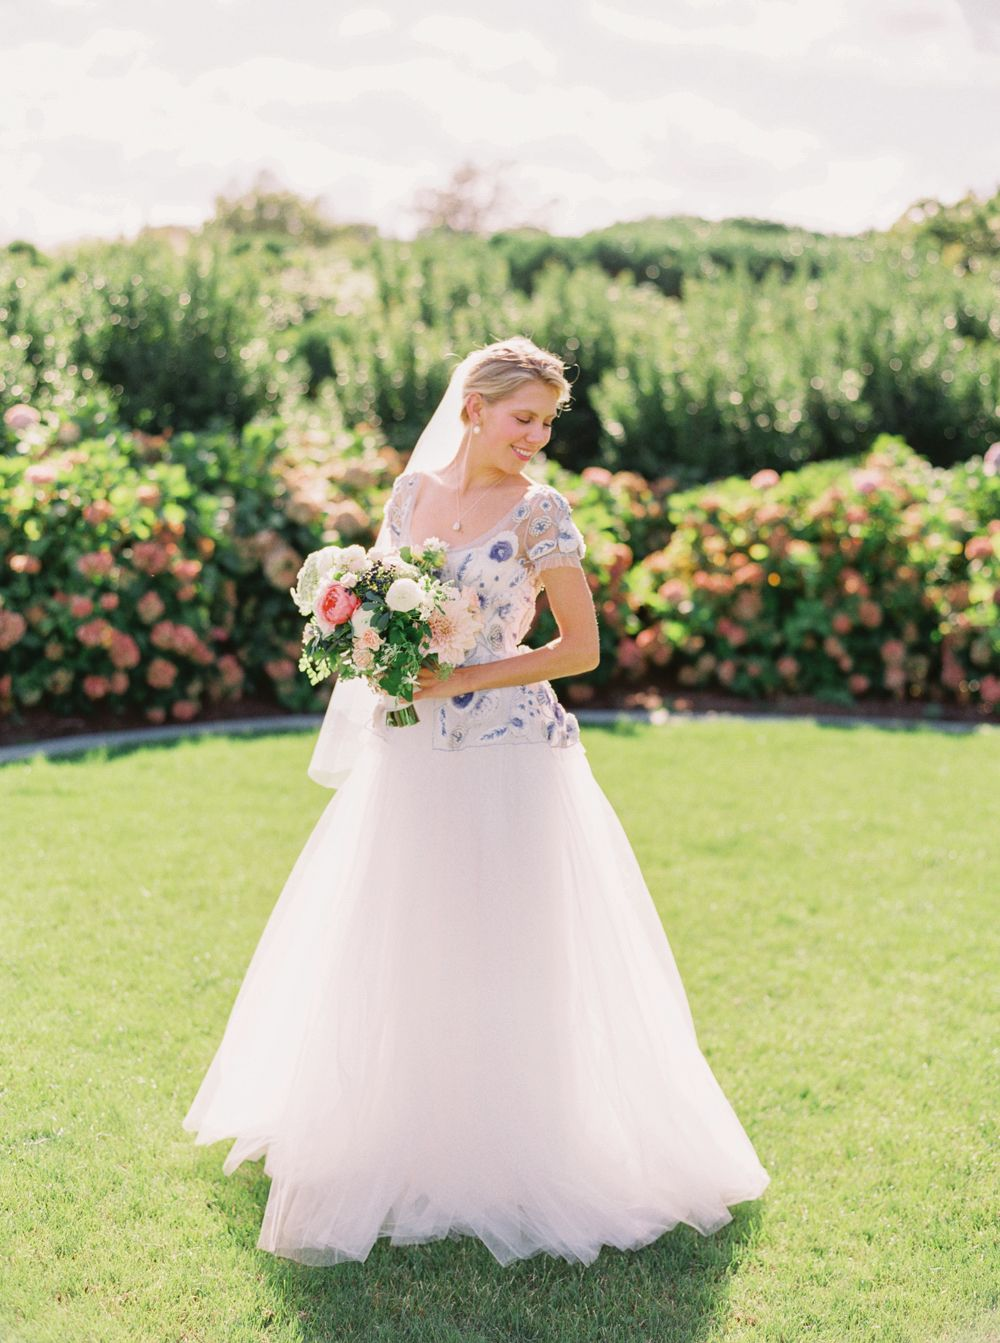 Elizabeth u tylerus elegant ocean house wedding in watch hill rhode